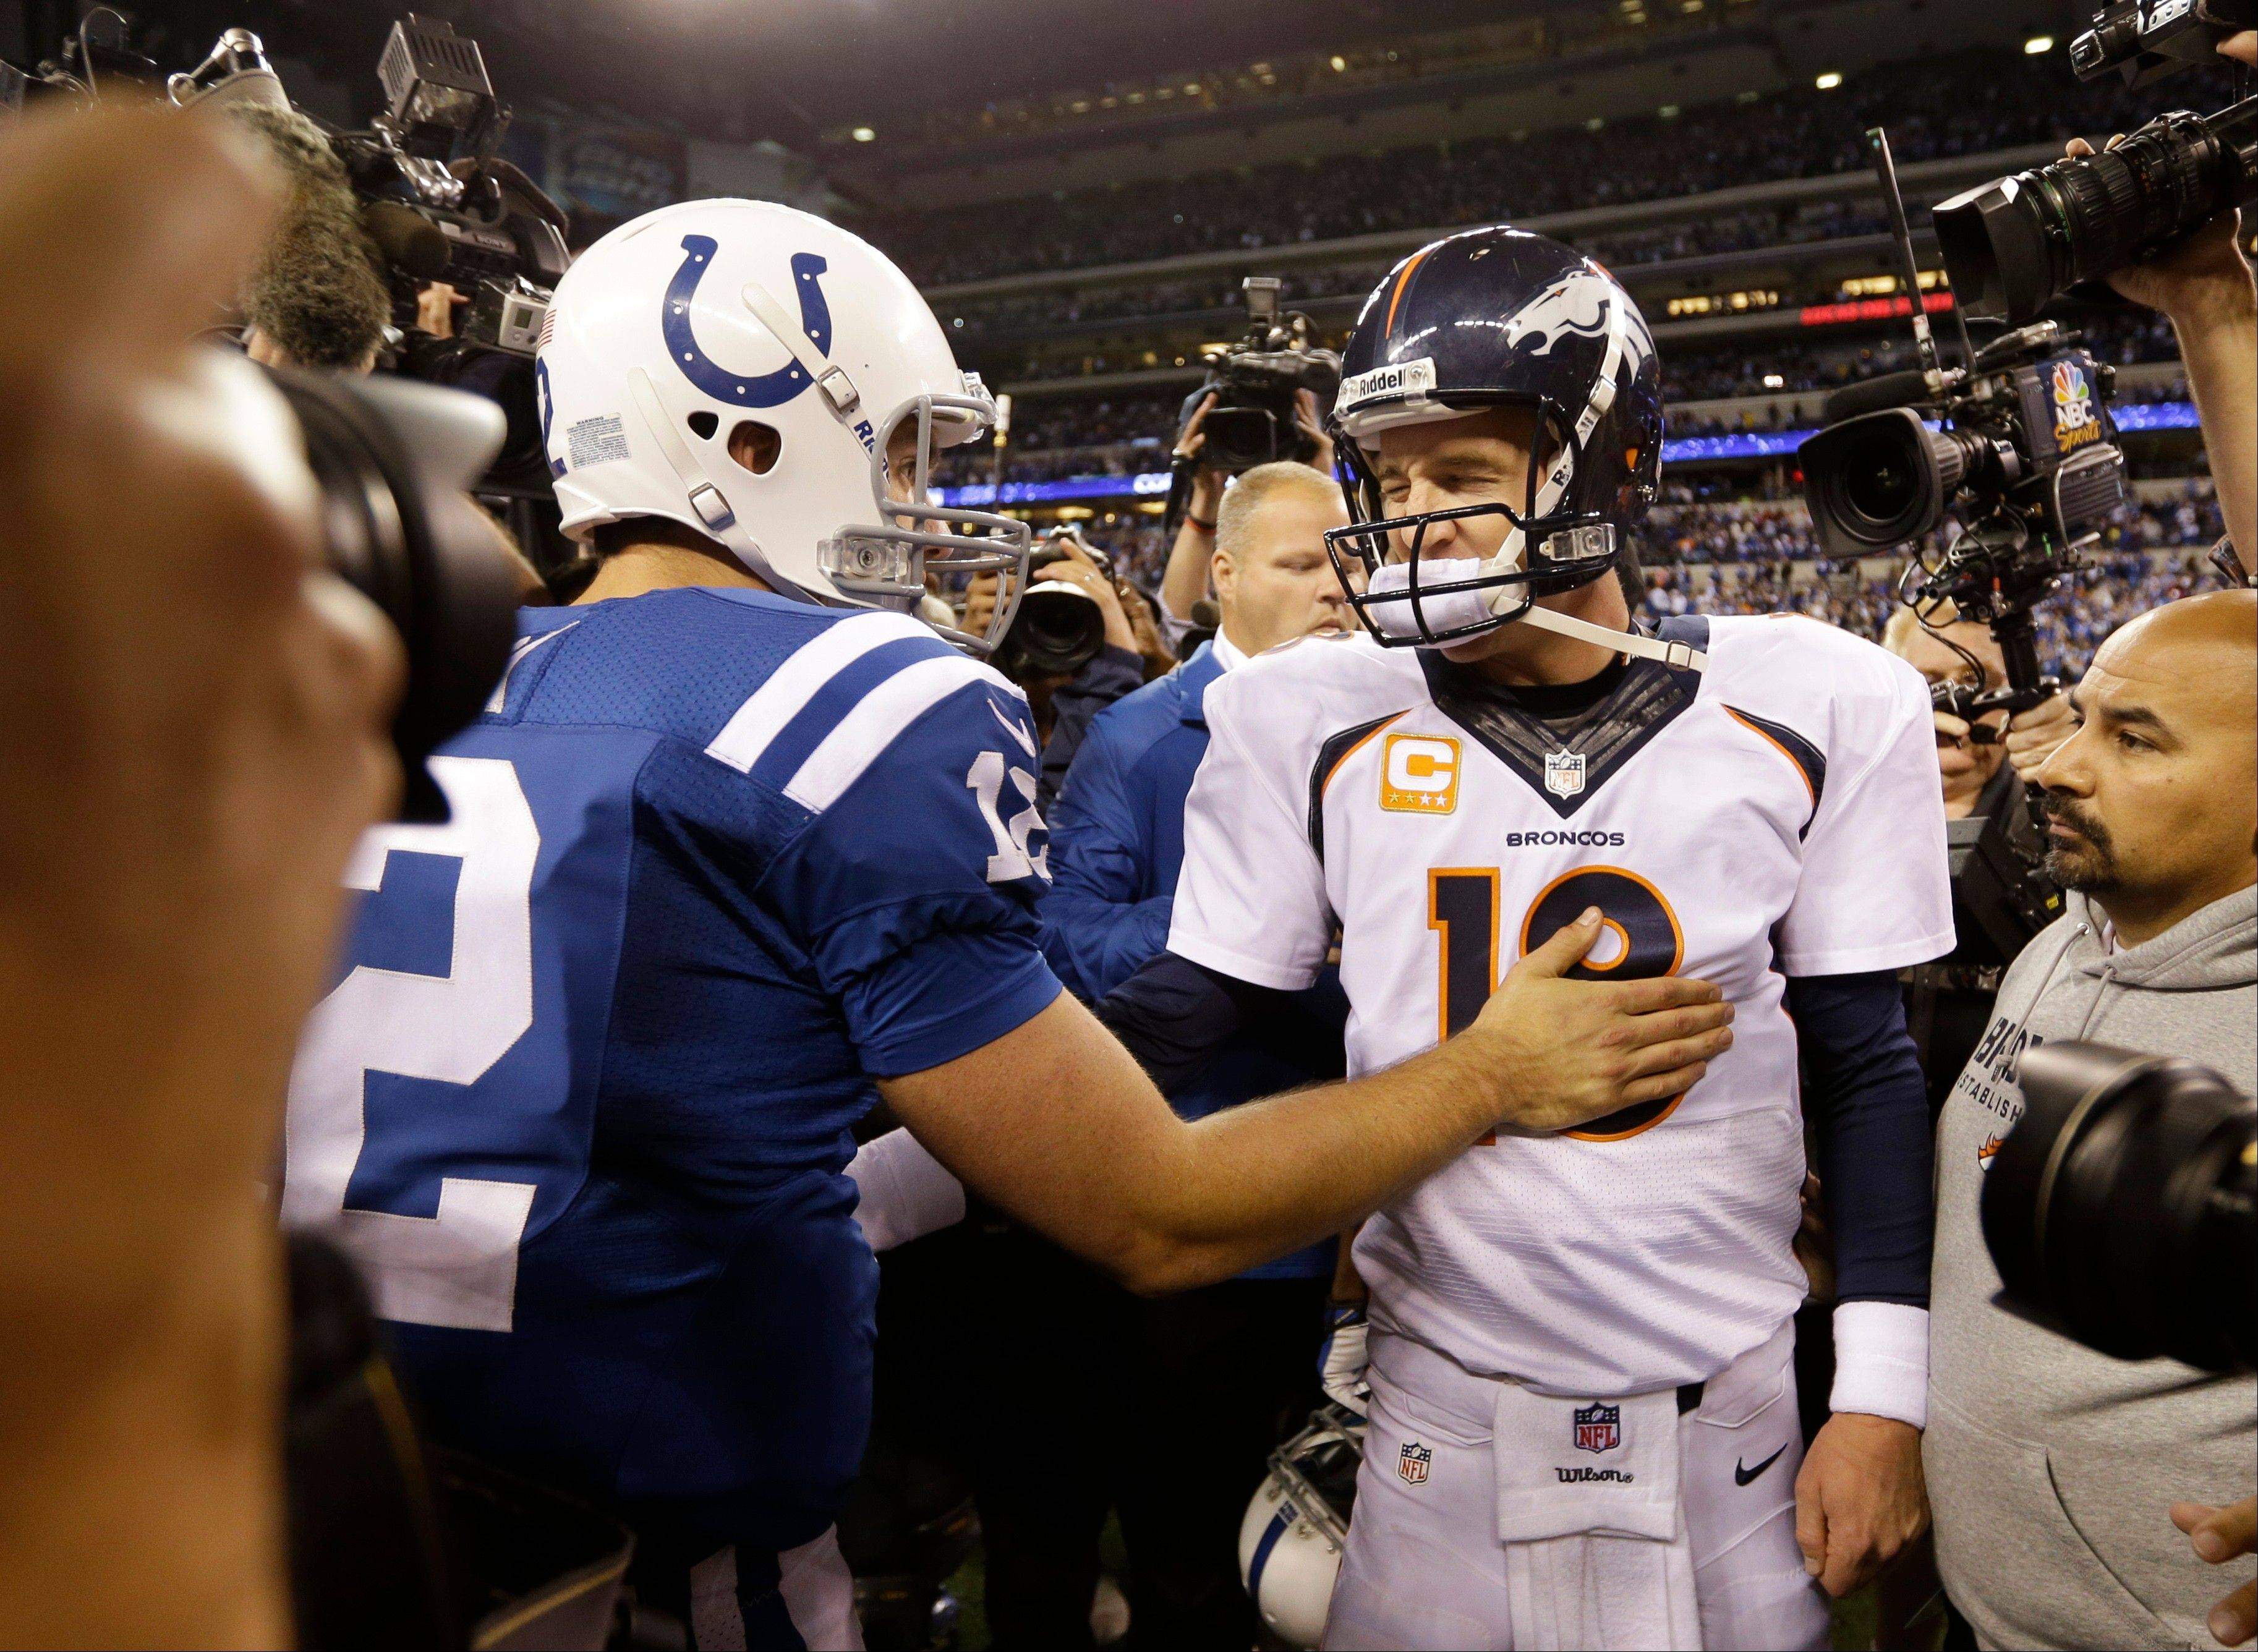 Denver Broncos quarterback Peyton Manning, right, greets Indianapolis Colts quarterback Andrew Luck (12) after an NFL football game, Sunday, Oct. 20, 2013, in Indianapolis. The Colts won 39-33.